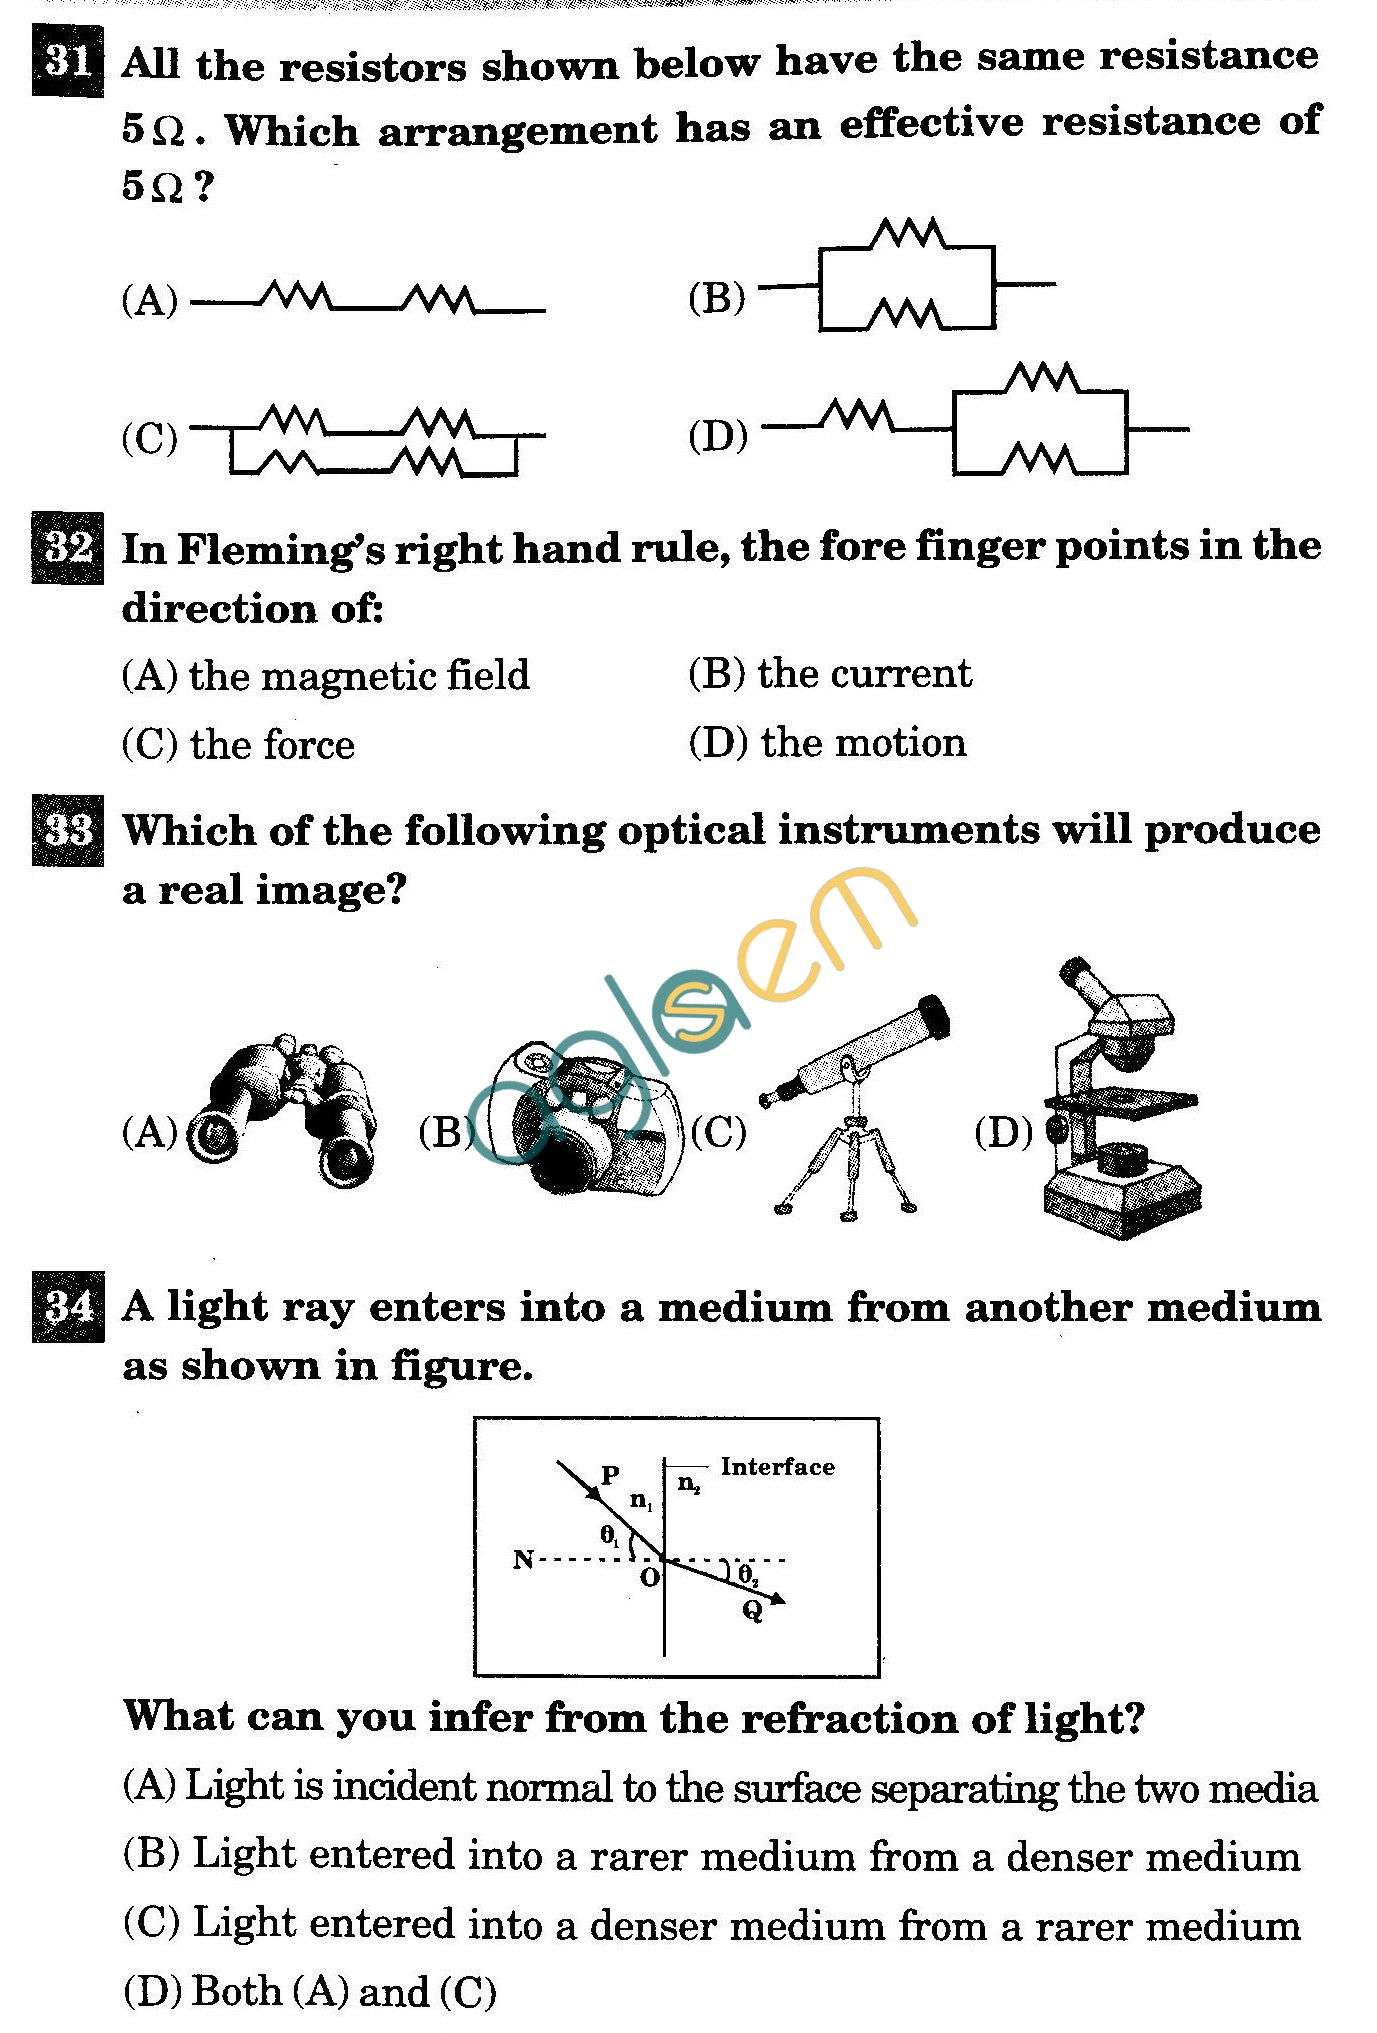 NSTSE 2011 Class X Question Paper with Answers - Physics